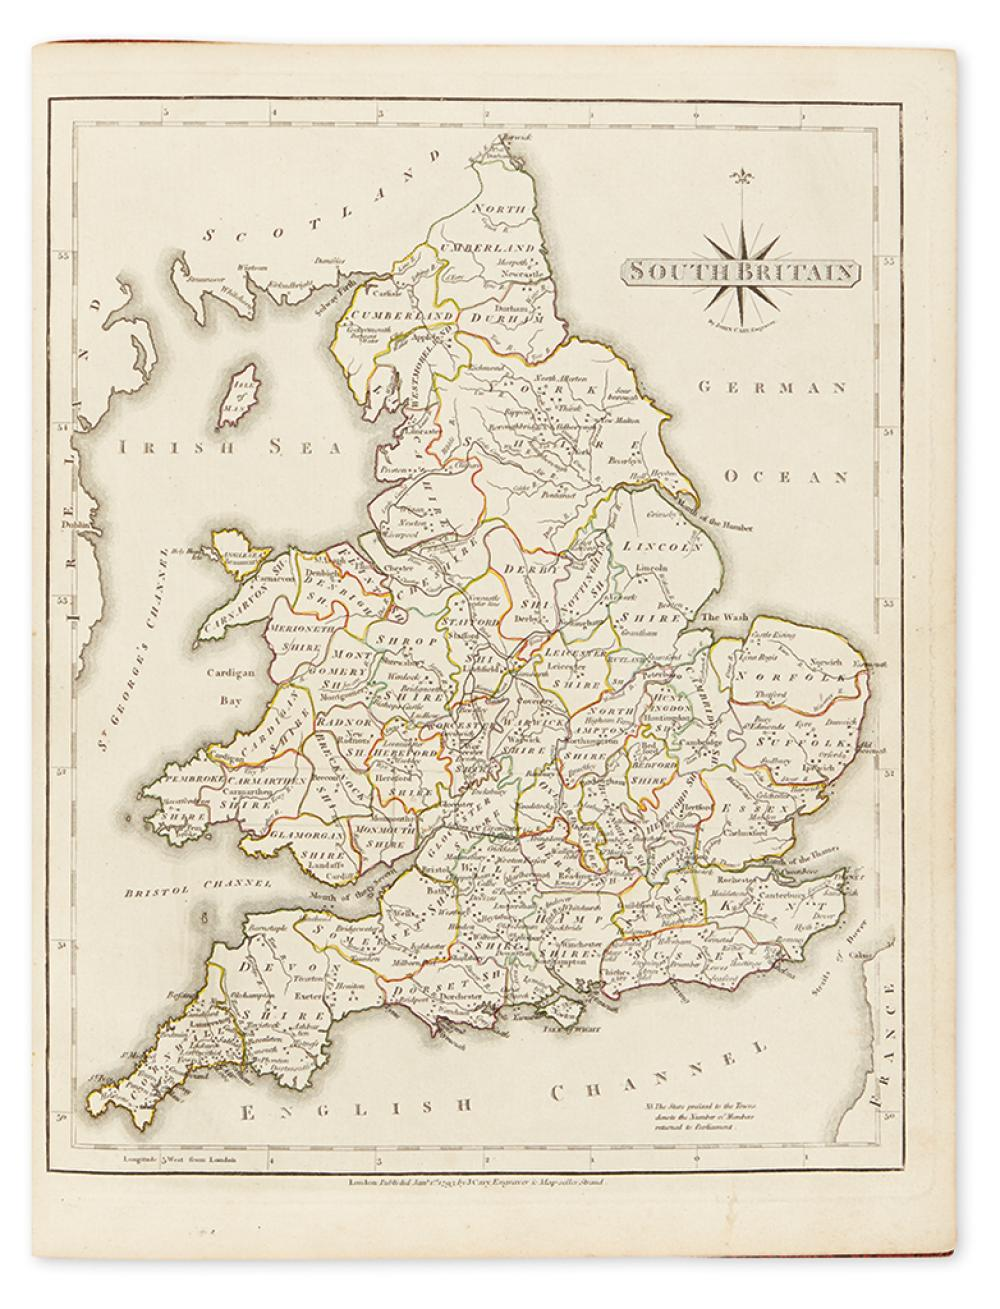 CARY, JOHN. New & Correct English Atlas: Being a New Set of County Maps from Actual Surveys.